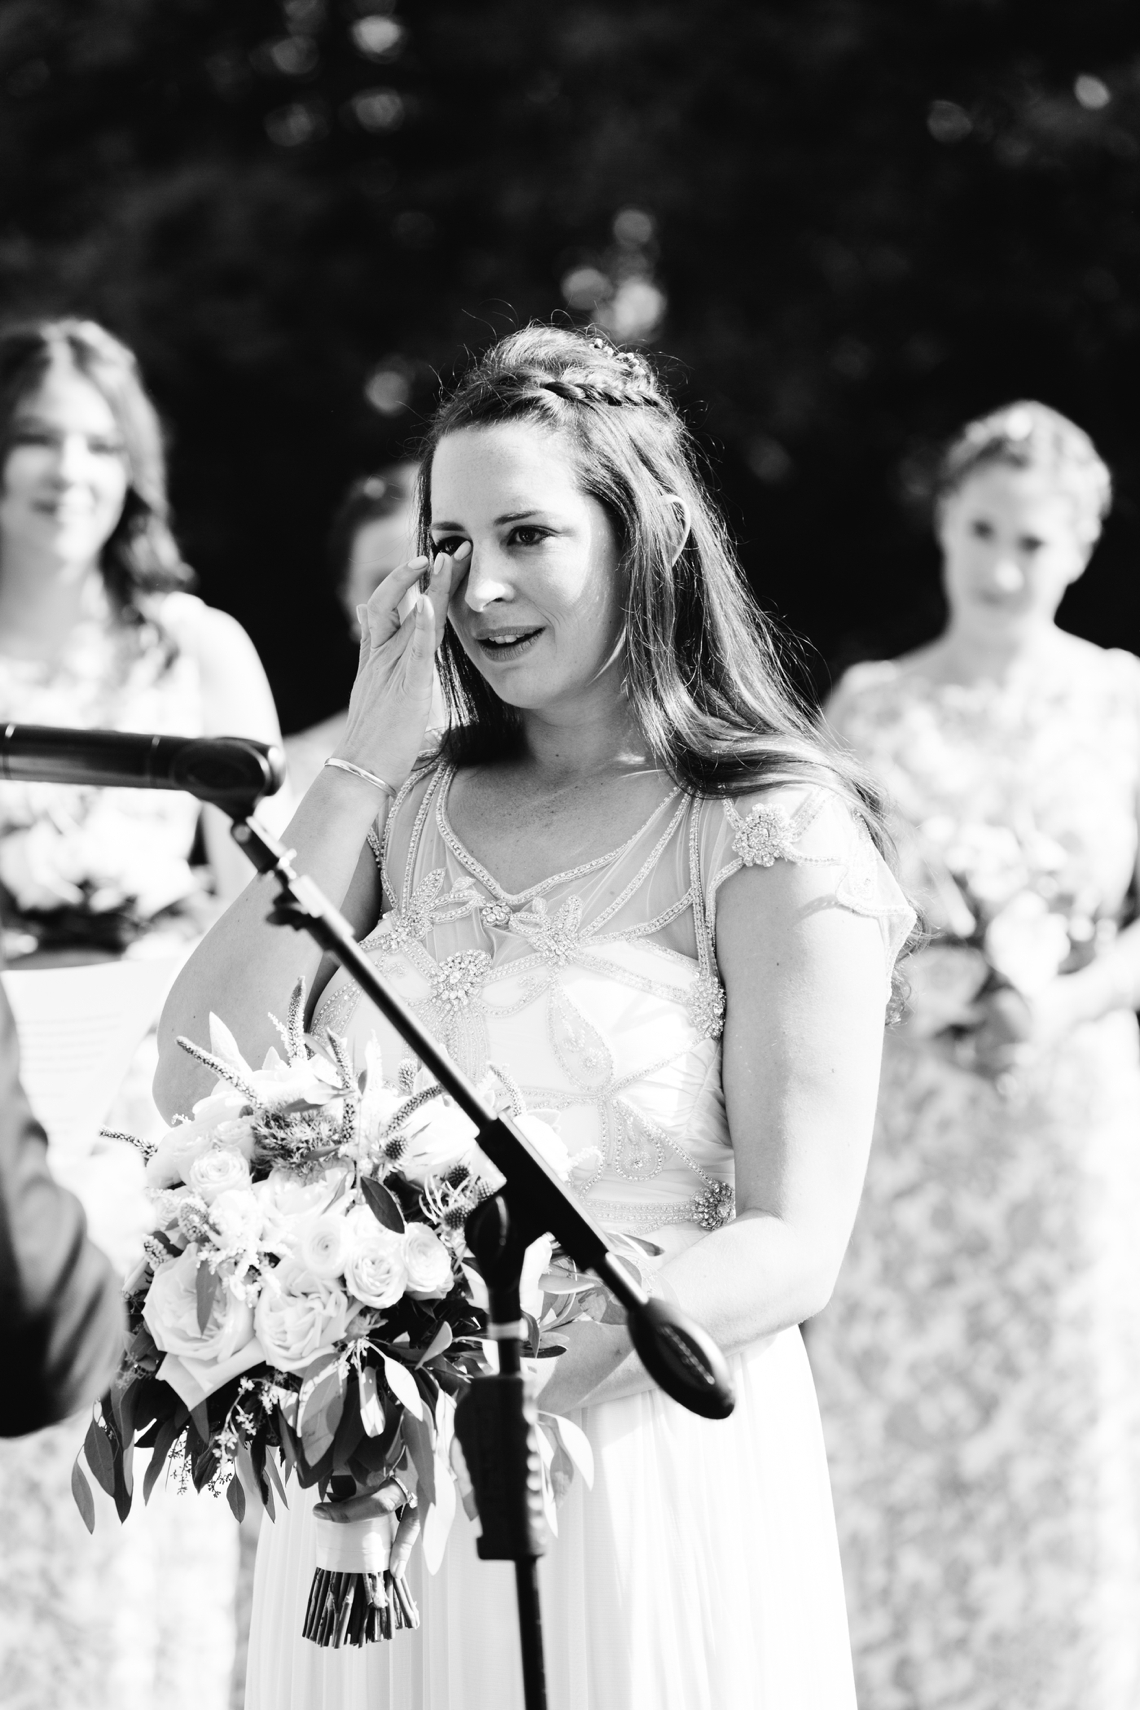 Allegra_Anderson_Photography_Inn_at_Mystic_Wedding_Connecticut_436